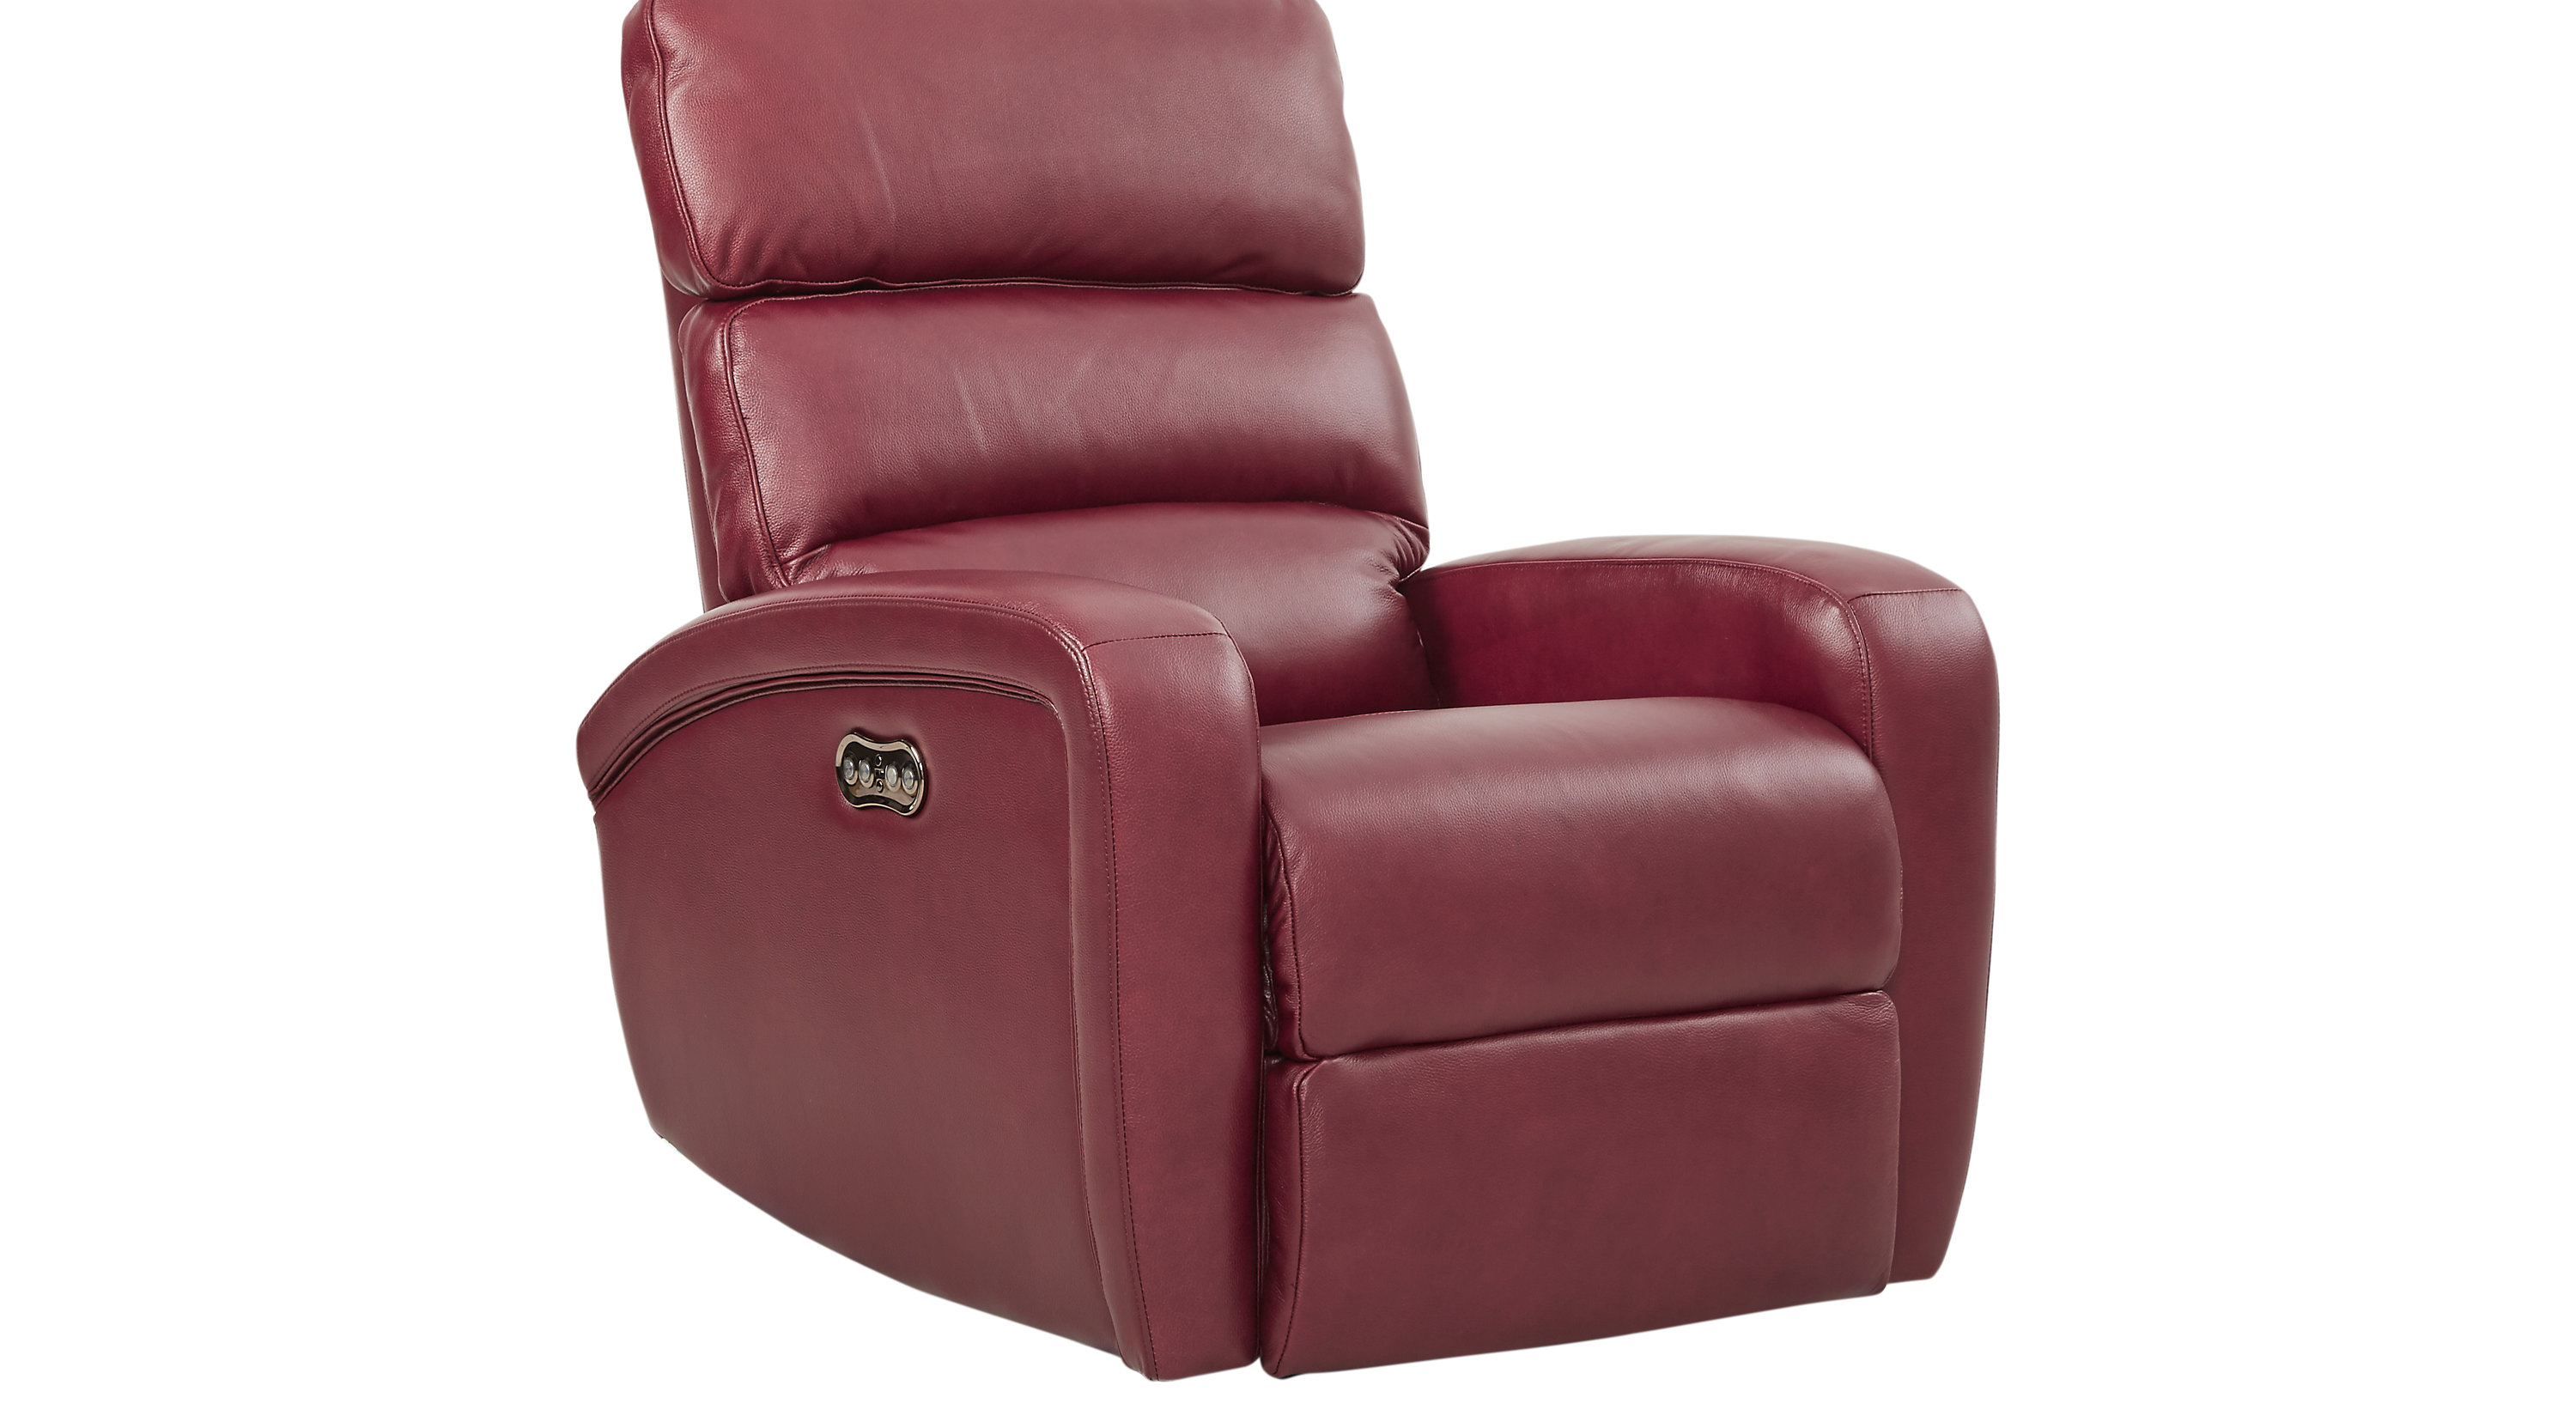 649 99 Overtown Burgundy Leather Power Recliner